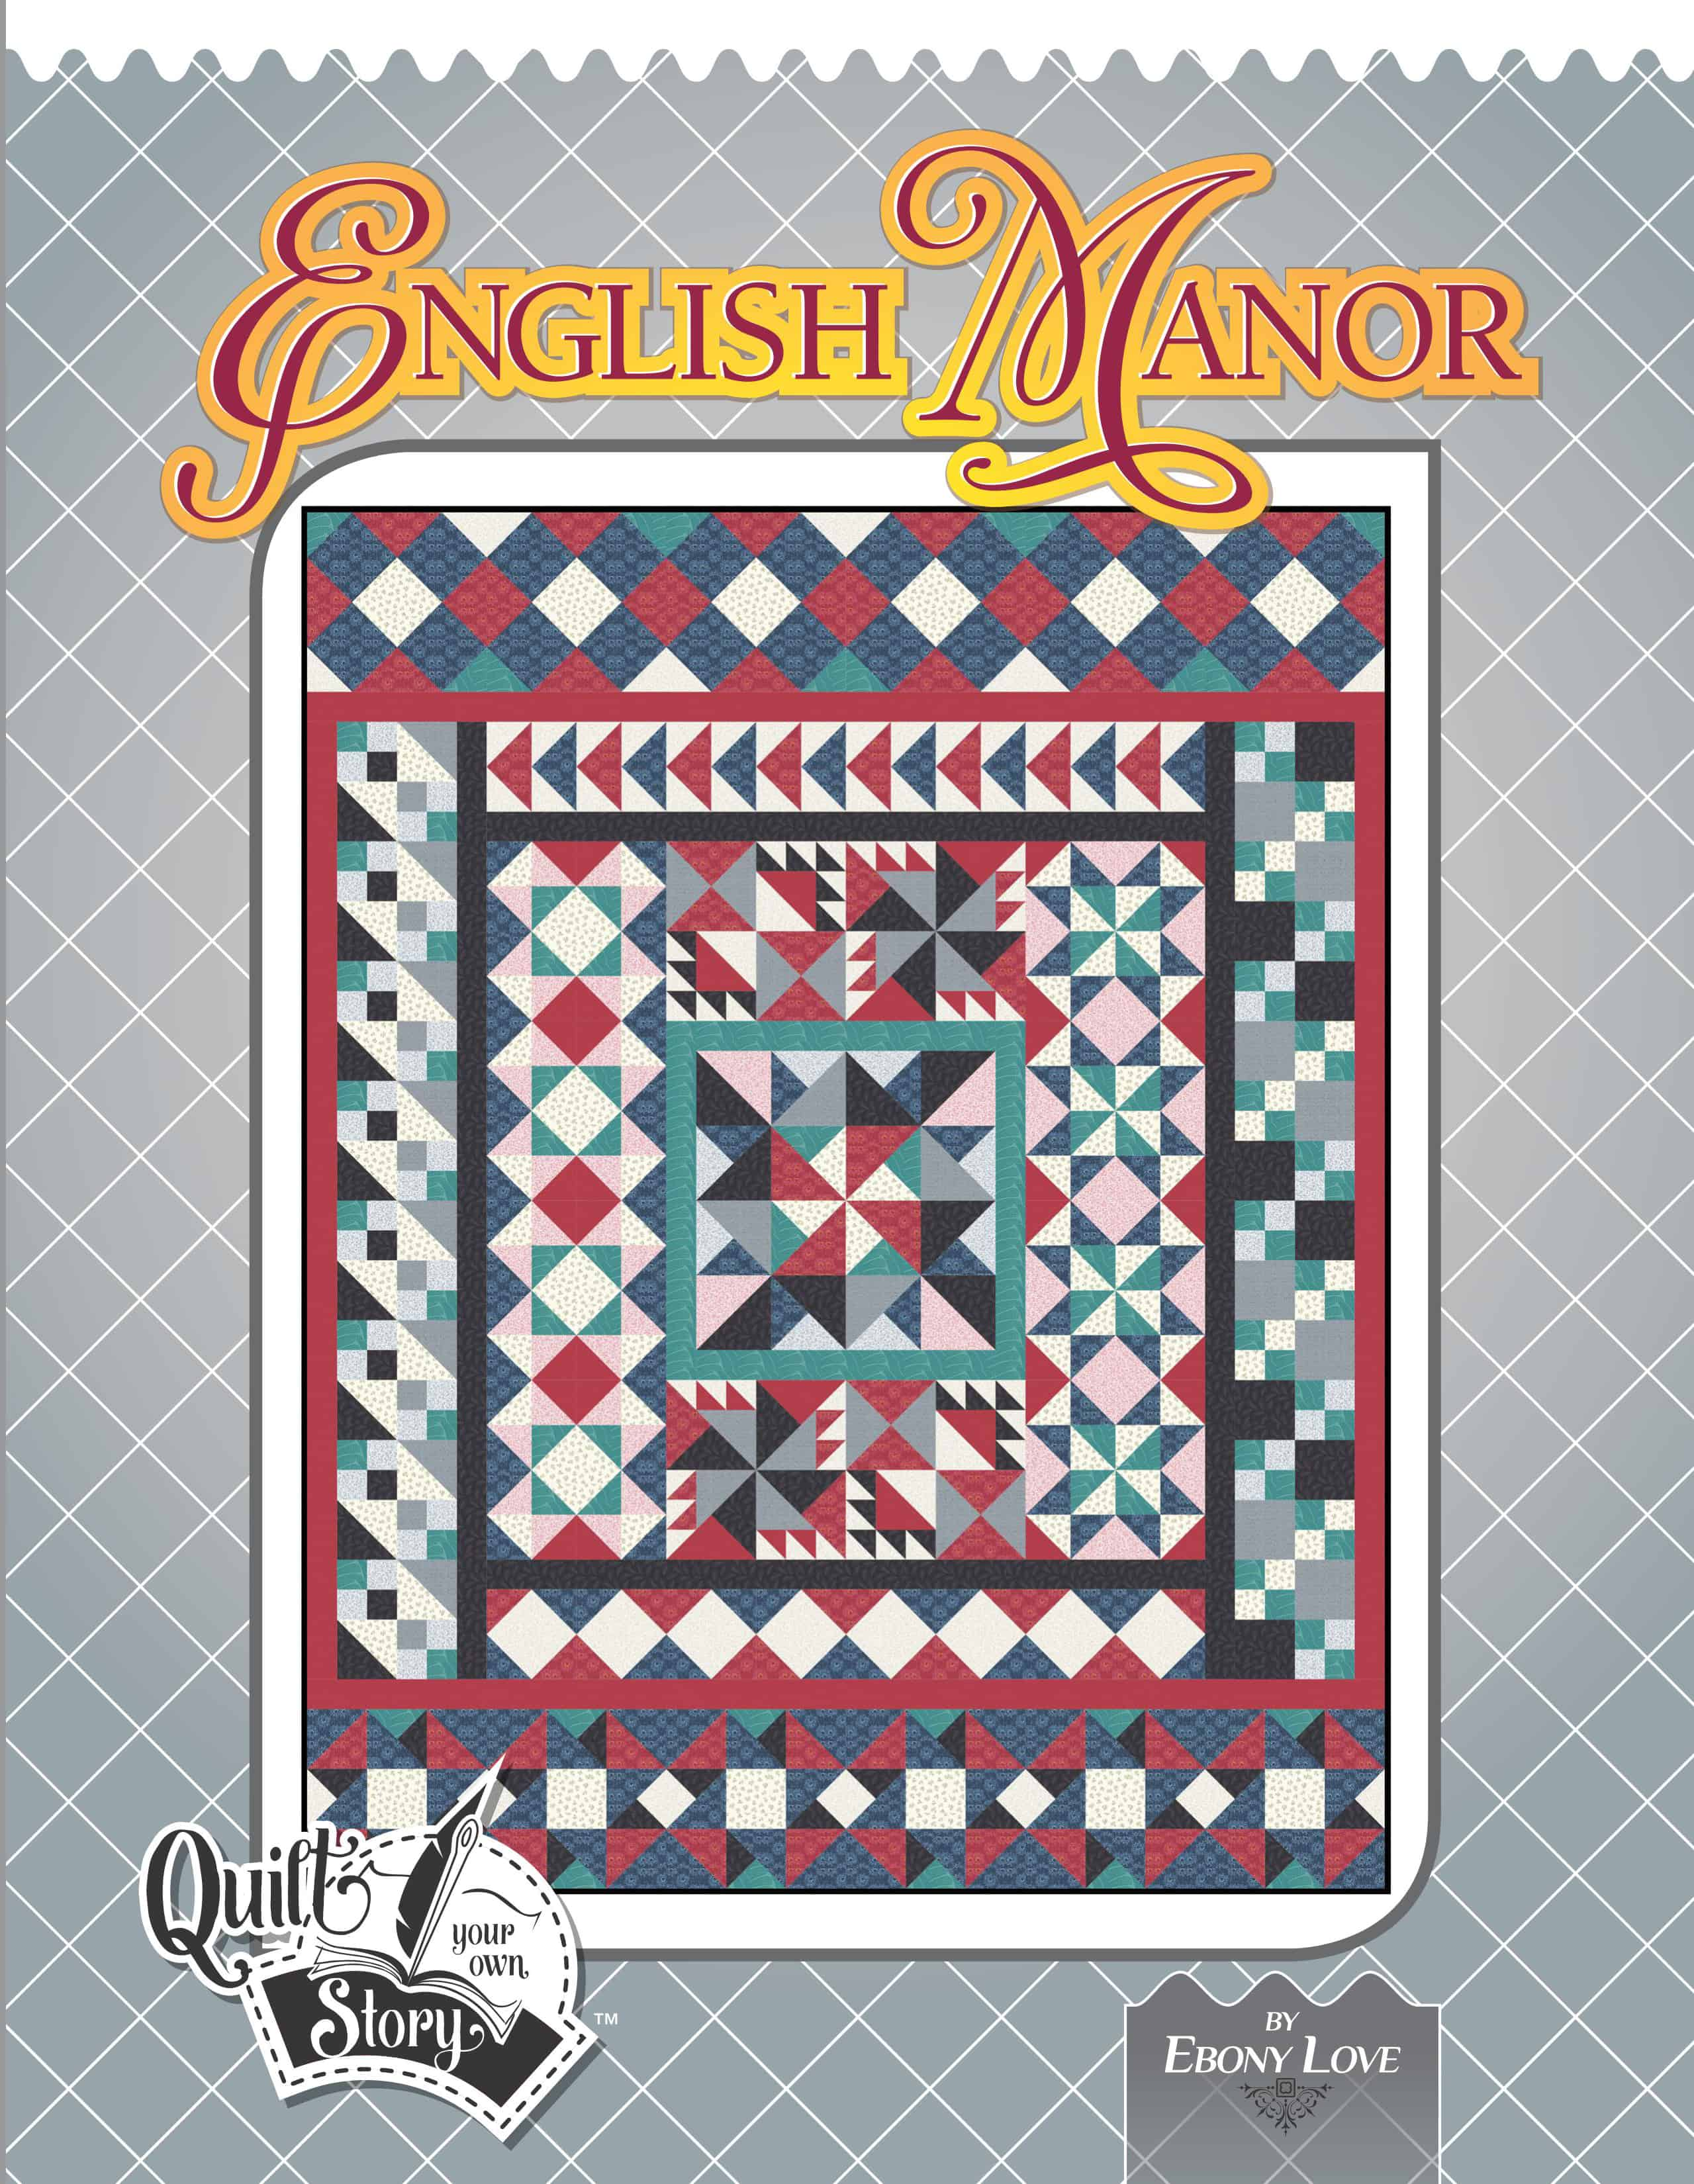 English Manor Quilt Along Pattern Book